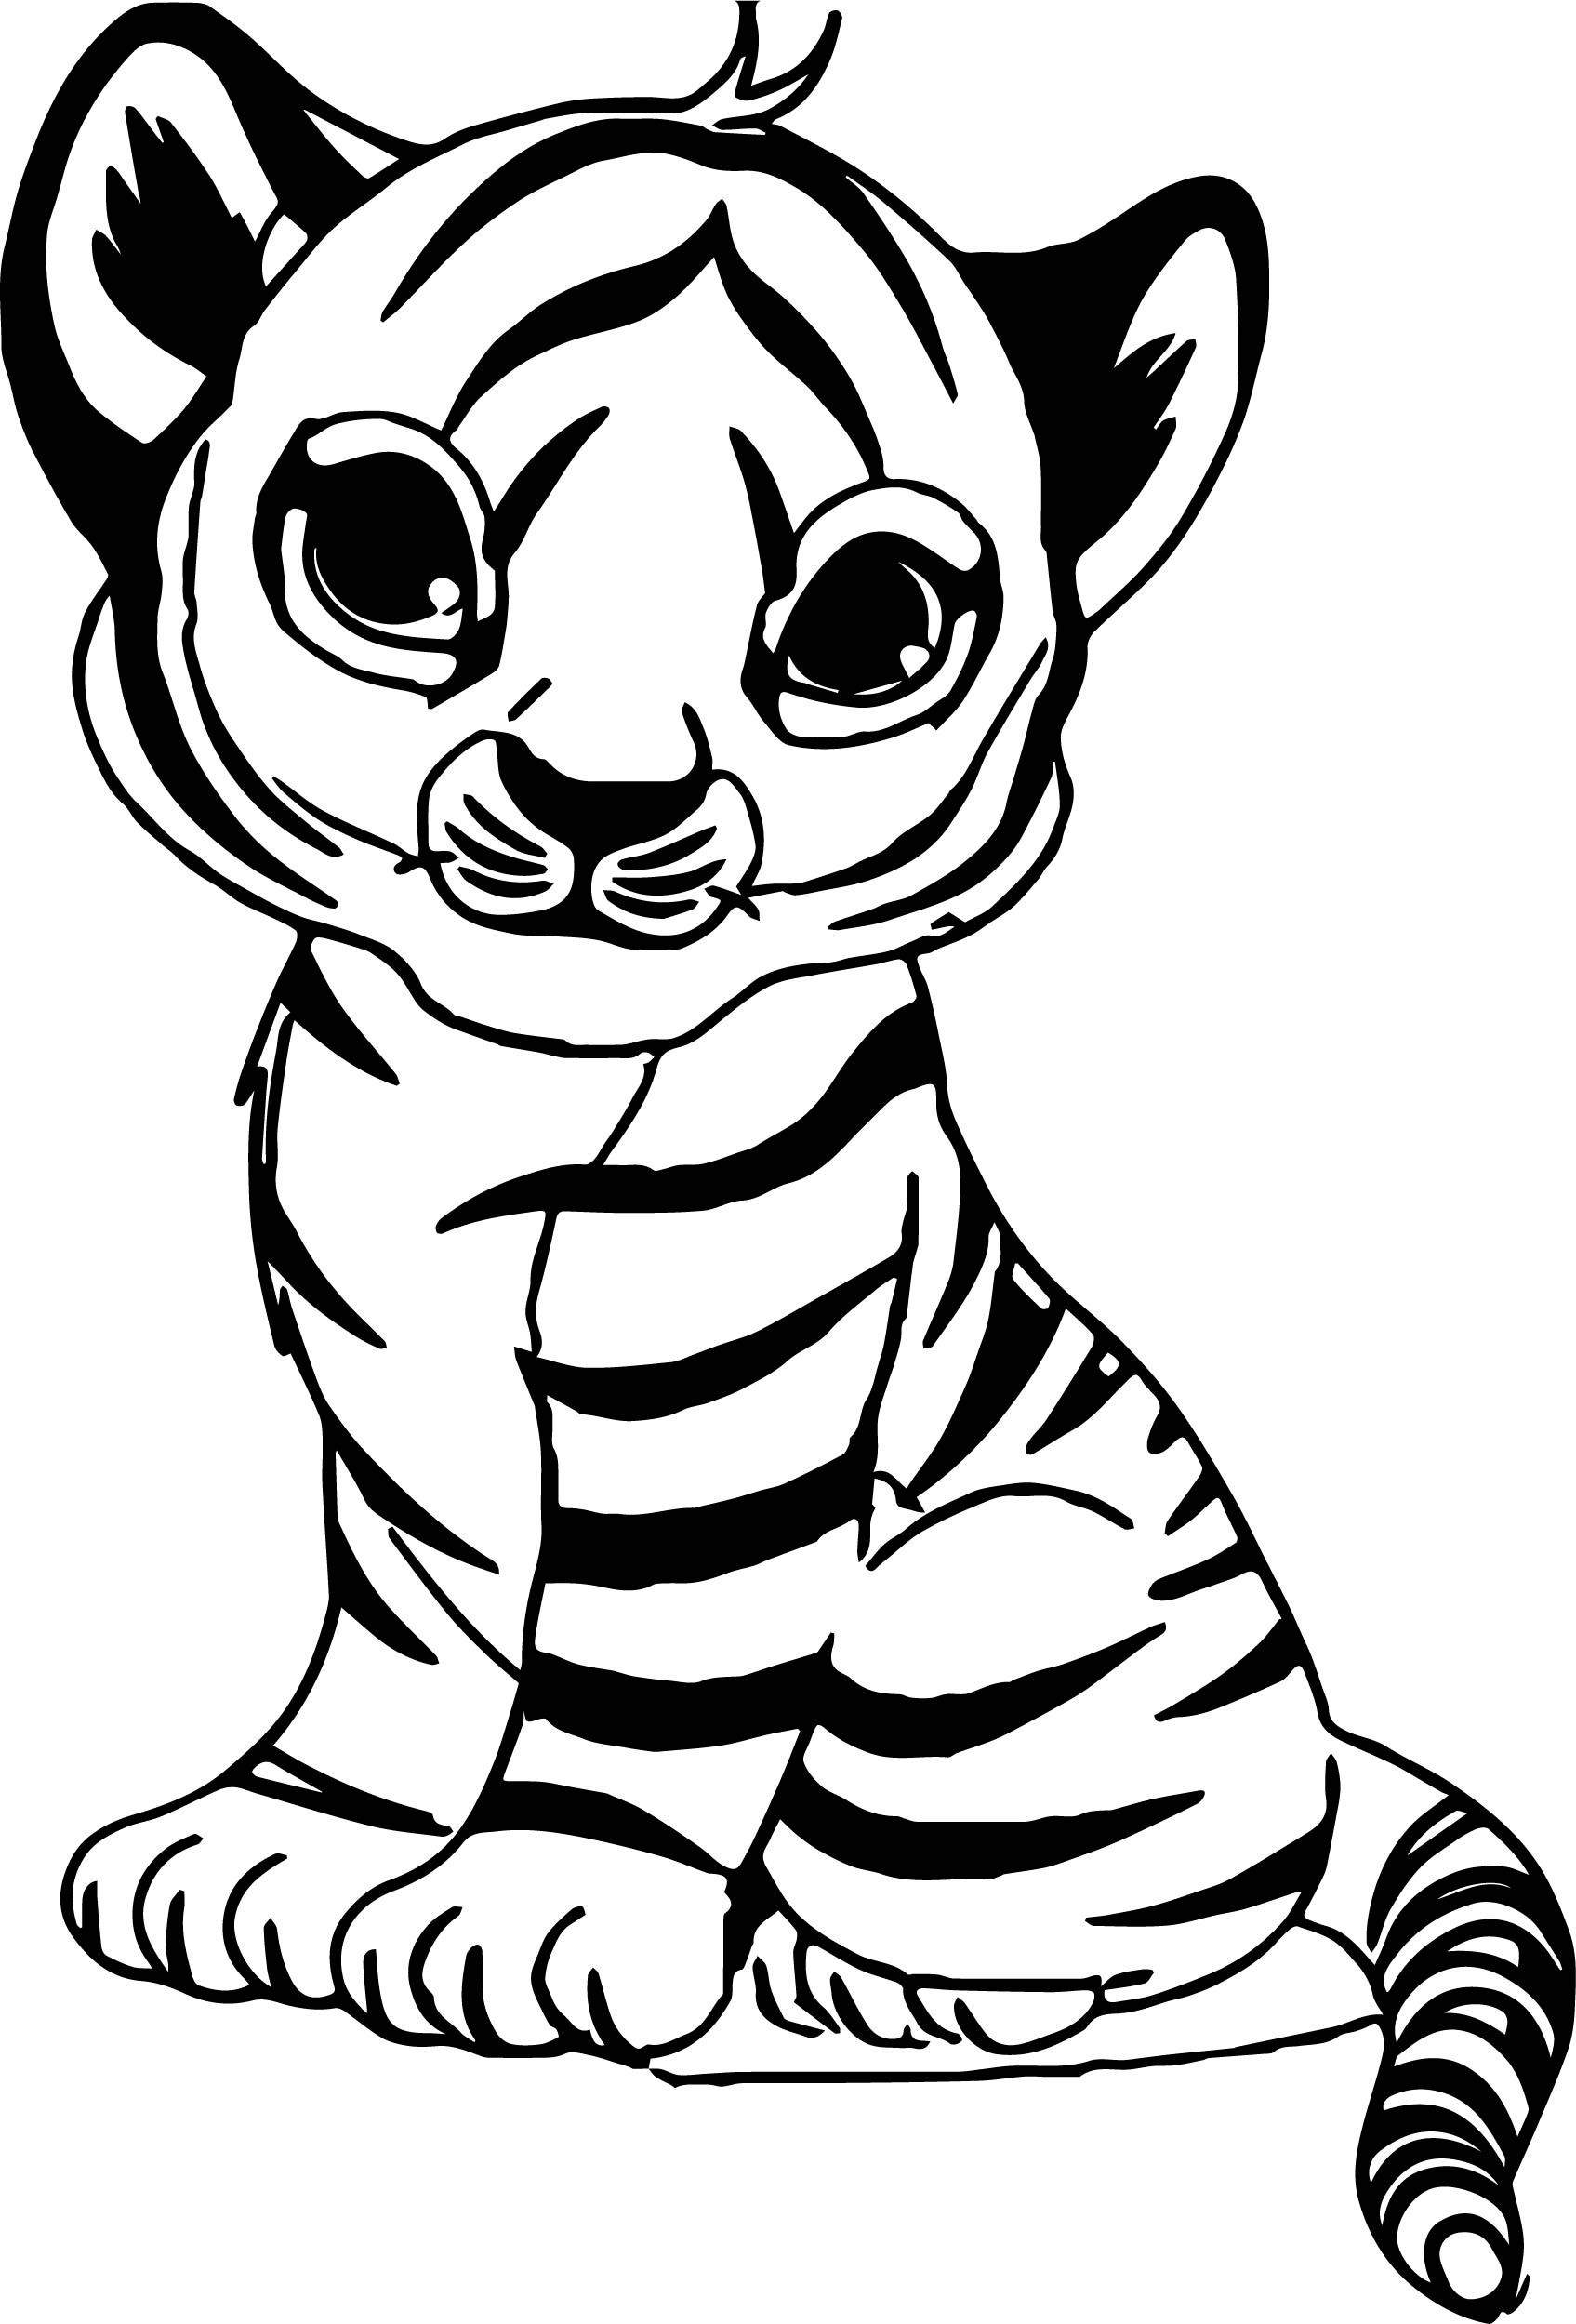 cool tiger coloring pages free printable tiger coloring pages for kids cool pages tiger coloring